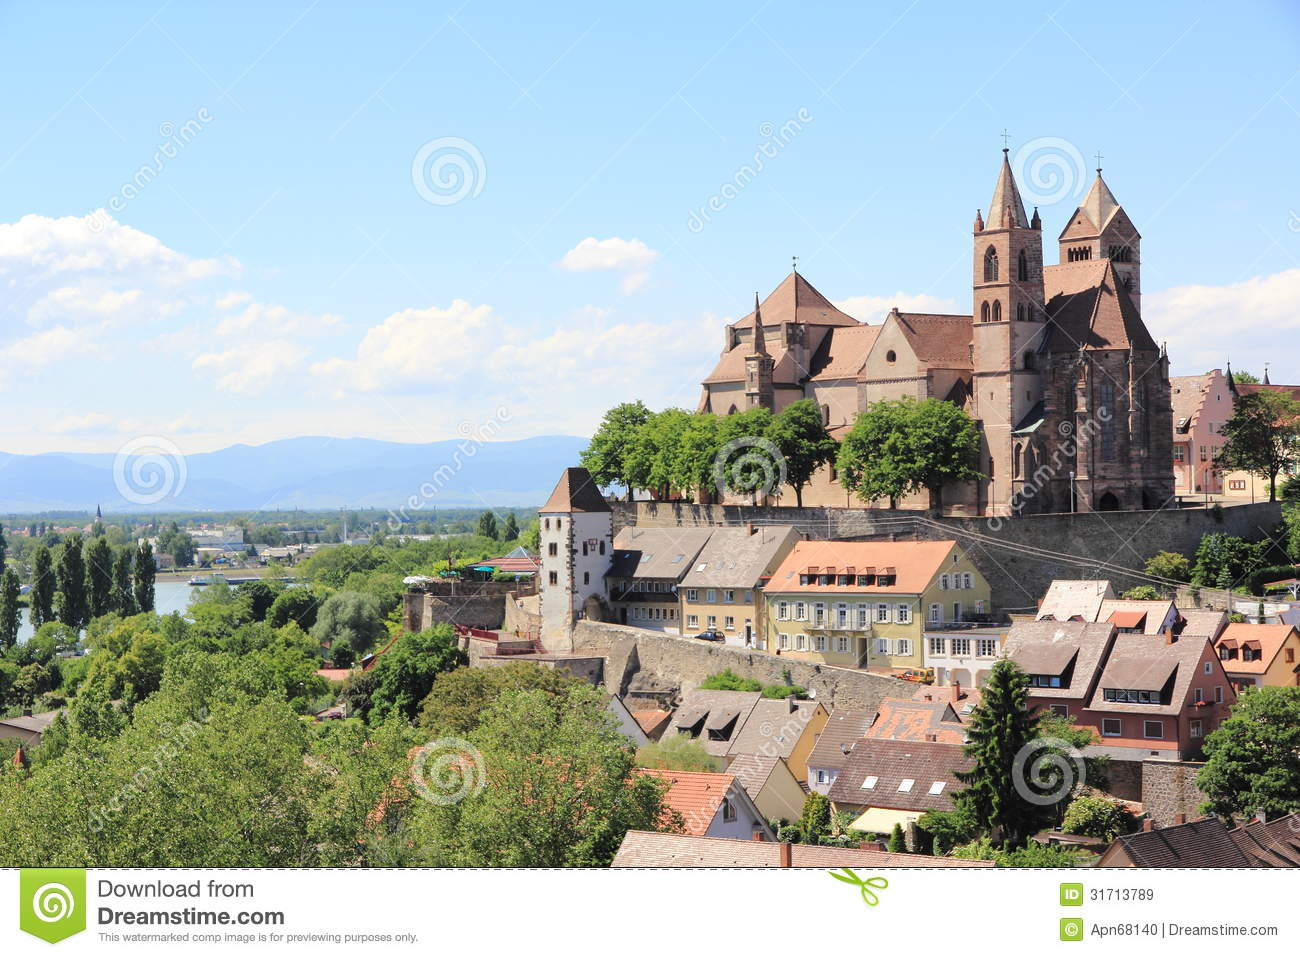 The City Of Breisach In Germany Royalty Free Stock Images.